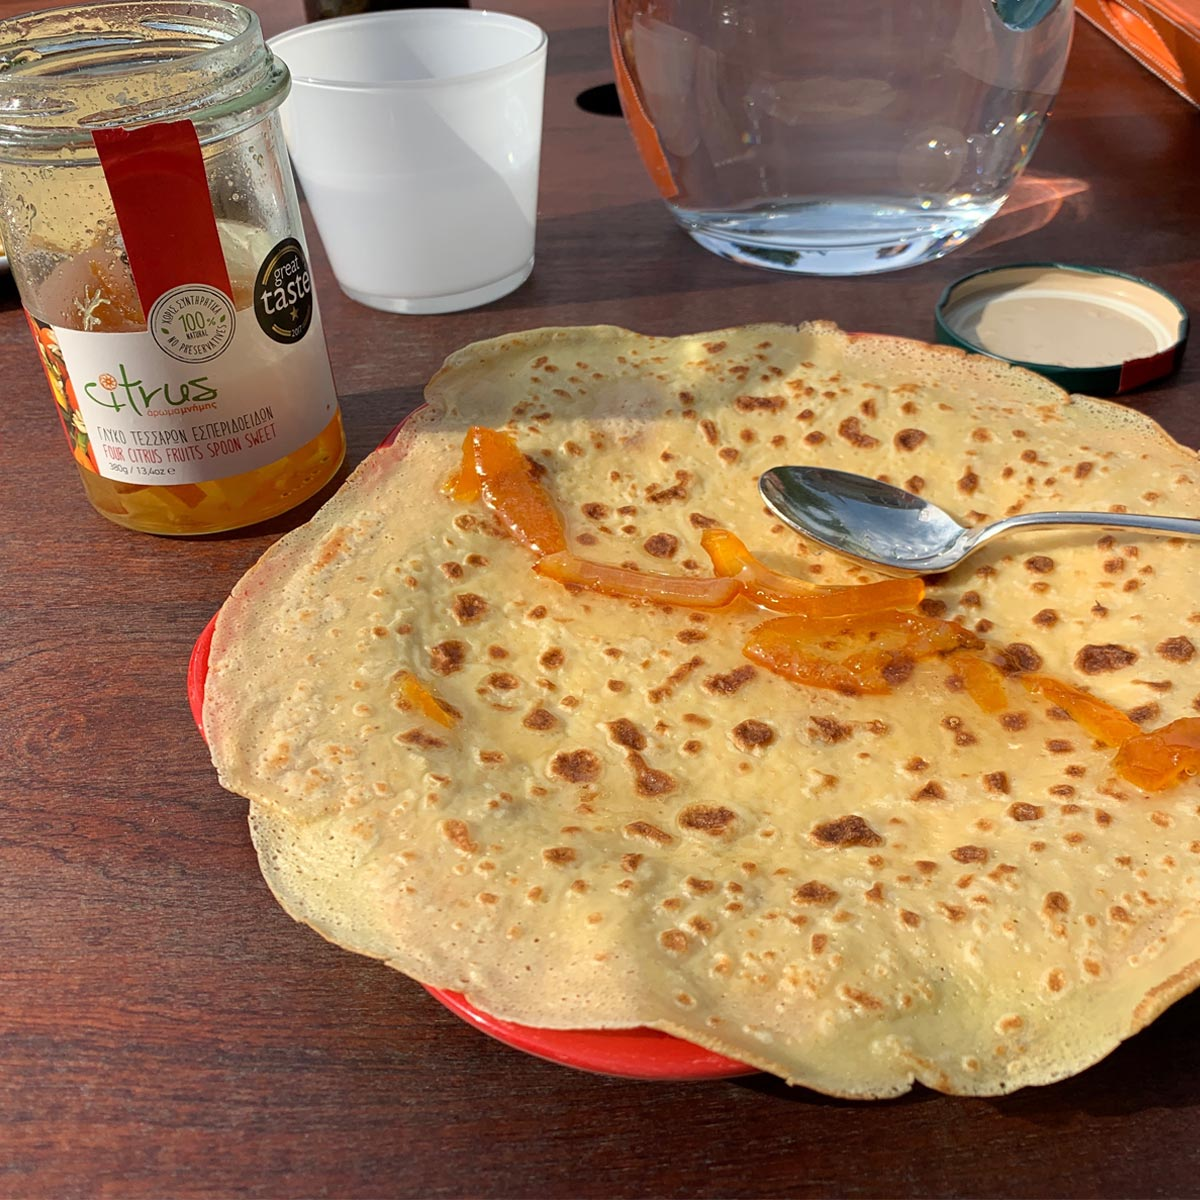 French crepes with Citrus Chian tangerine all-natural fruit preserve